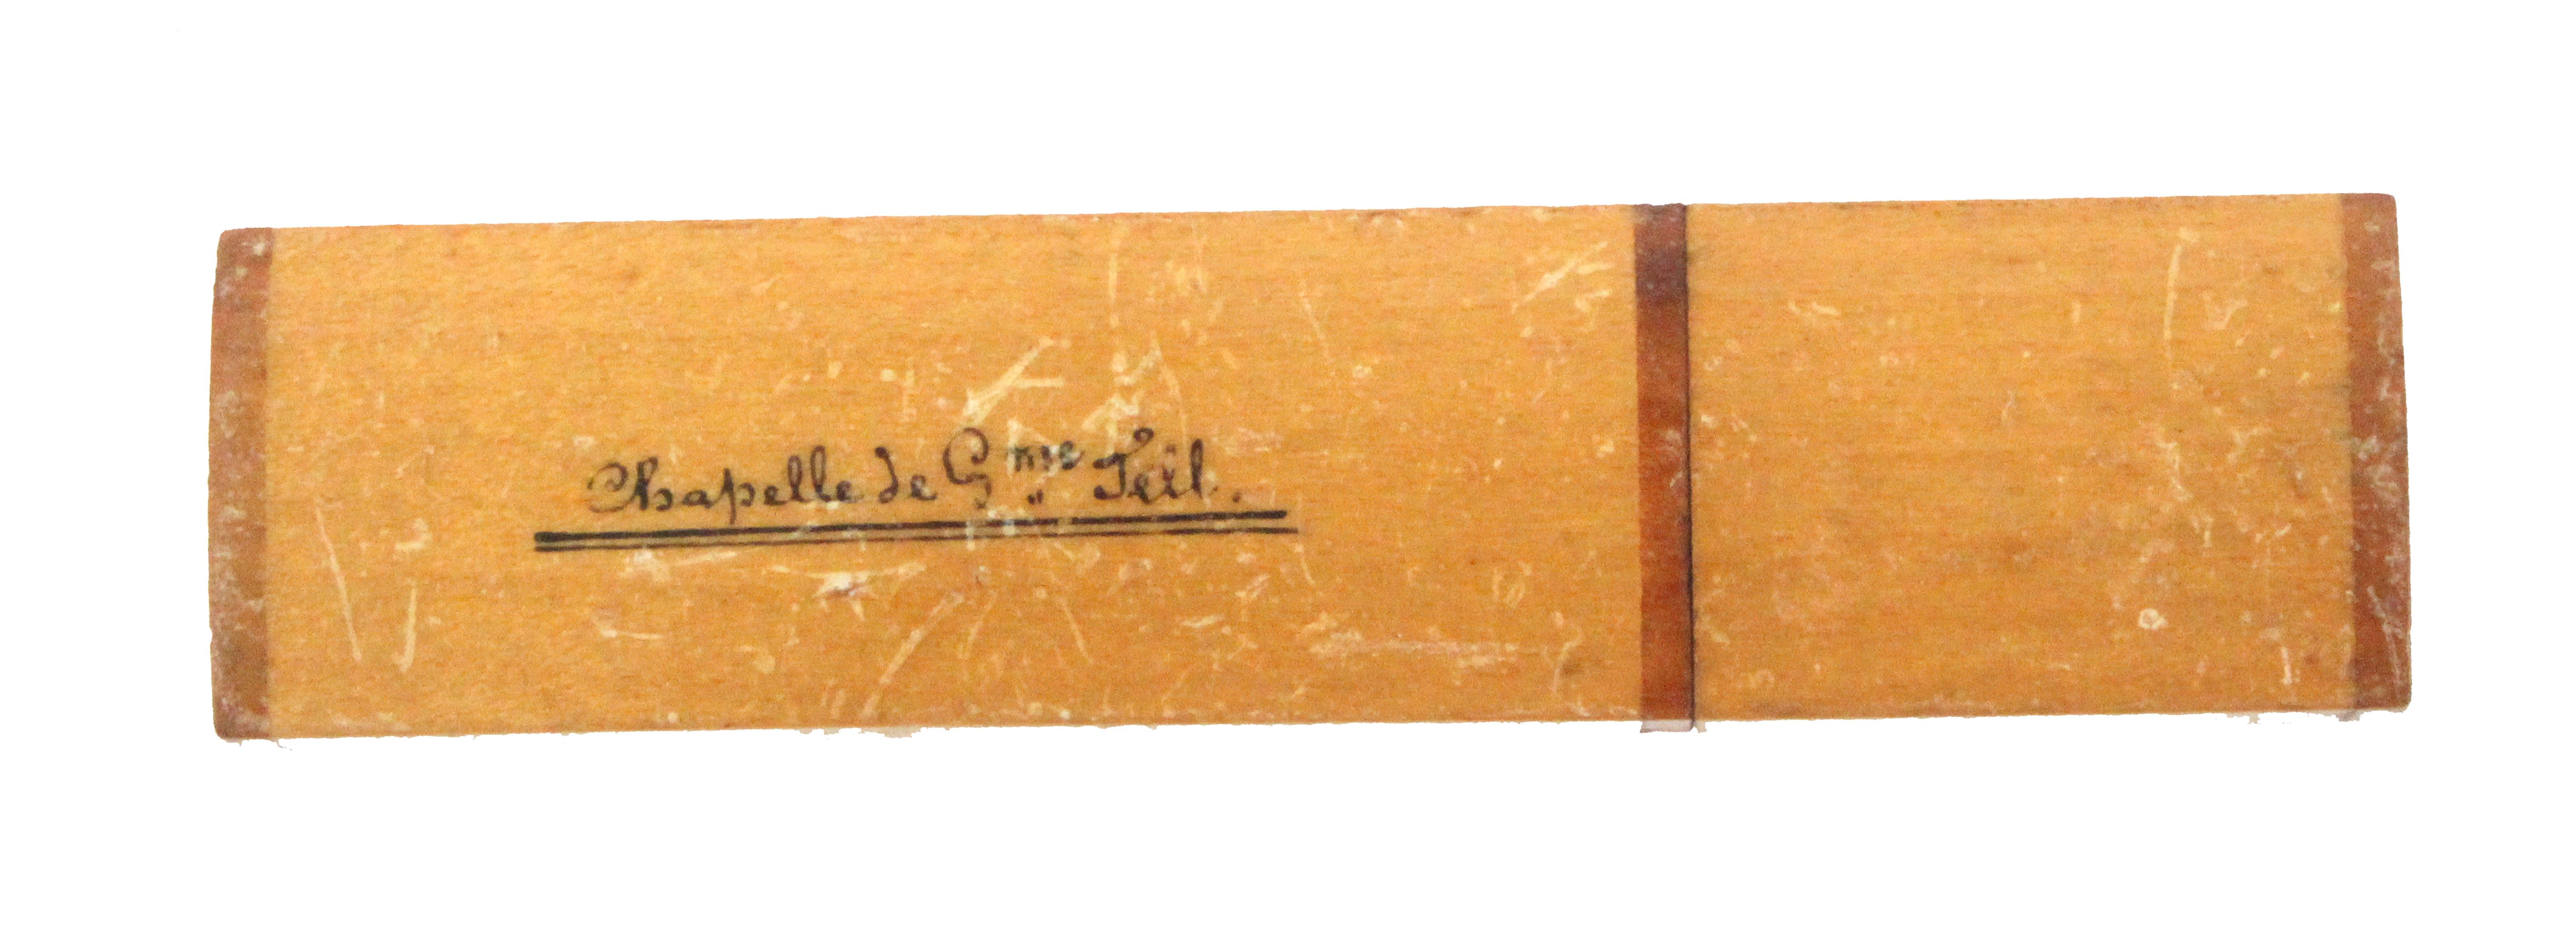 Four needle cases, comprising a rectangular example decorated in coloured glass beads in a trellis - Image 2 of 2